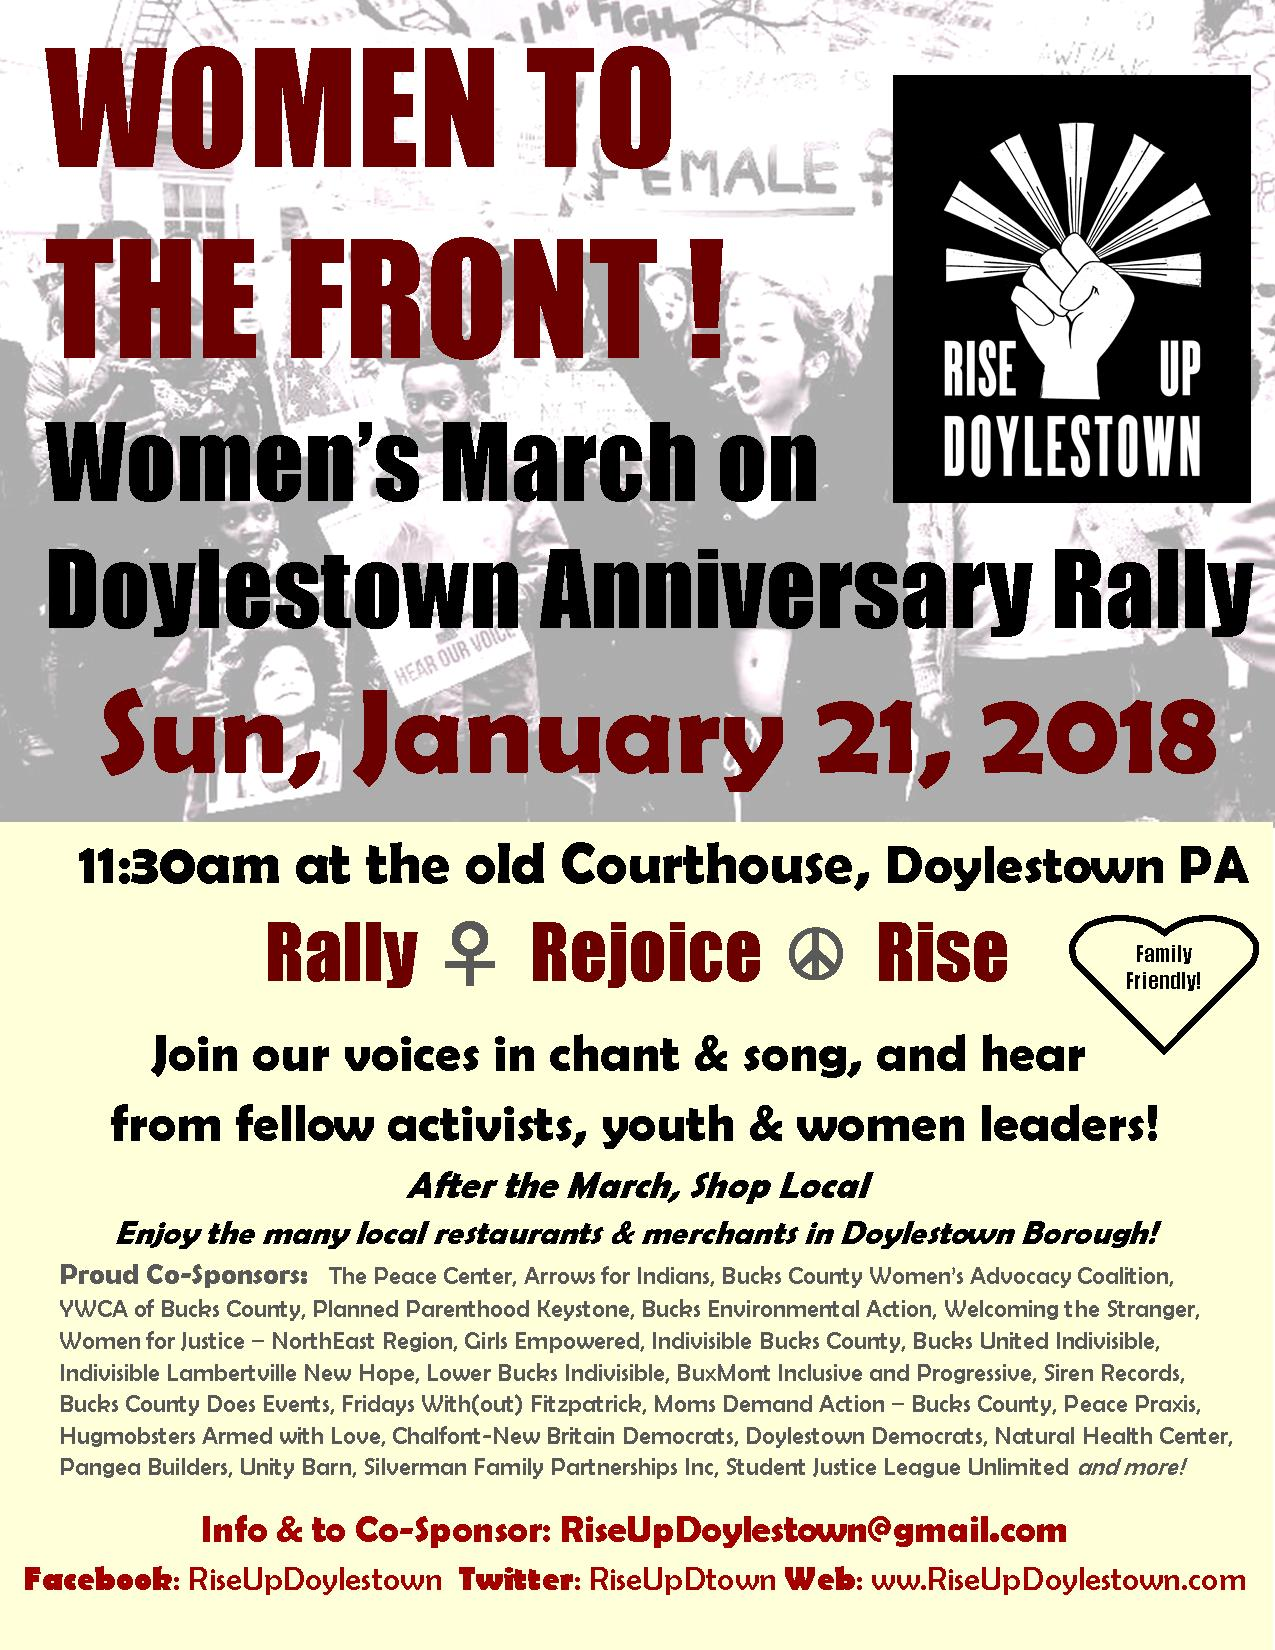 Women_to_the_front_doylestown_rally_jan_21_2018_flyer_2